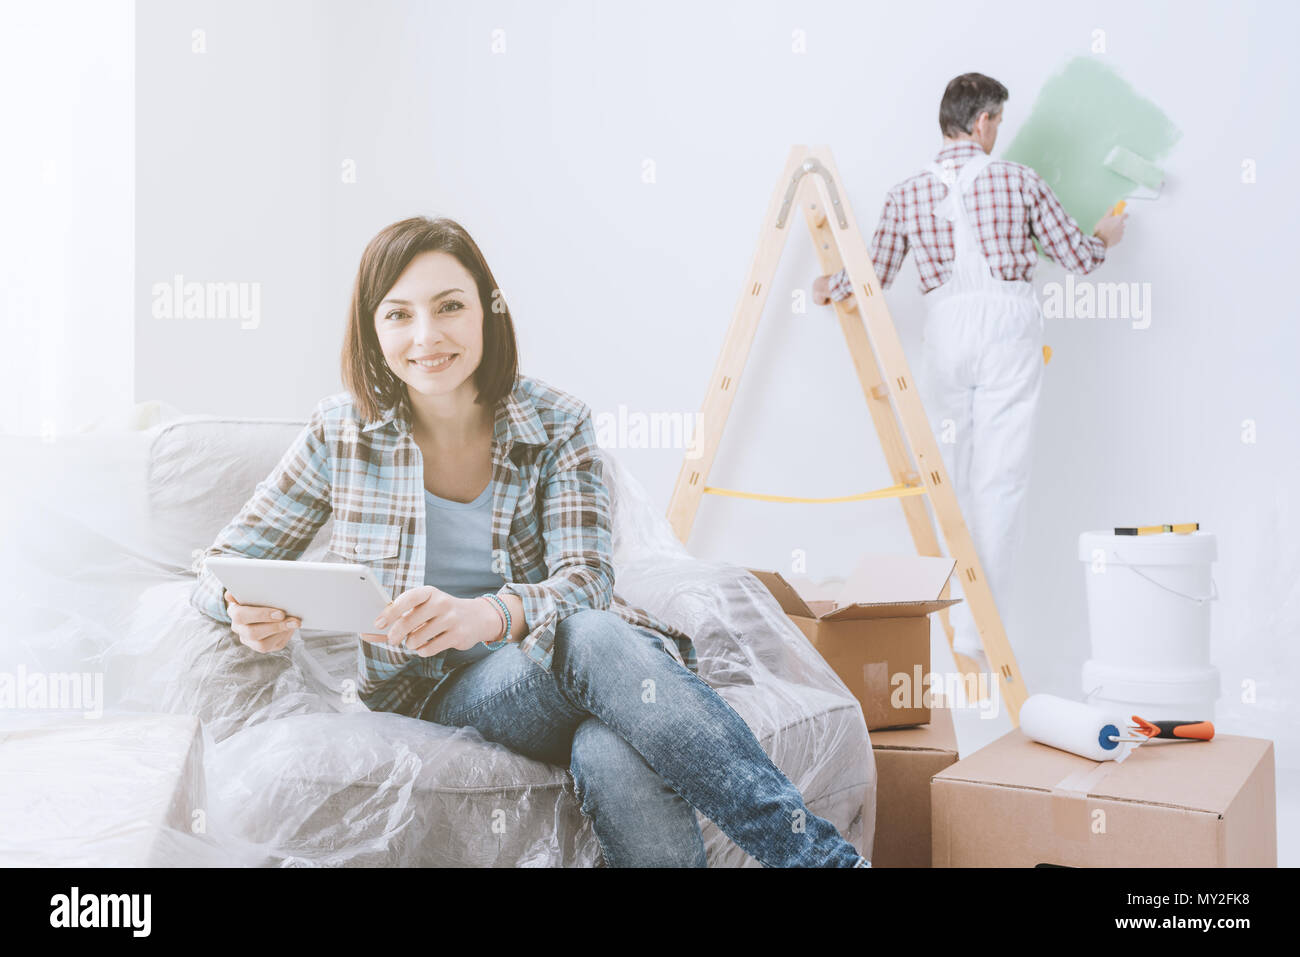 Happy woman relaxing and connecting with her tablet while a painter is painting the room, home renovation concept - Stock Image